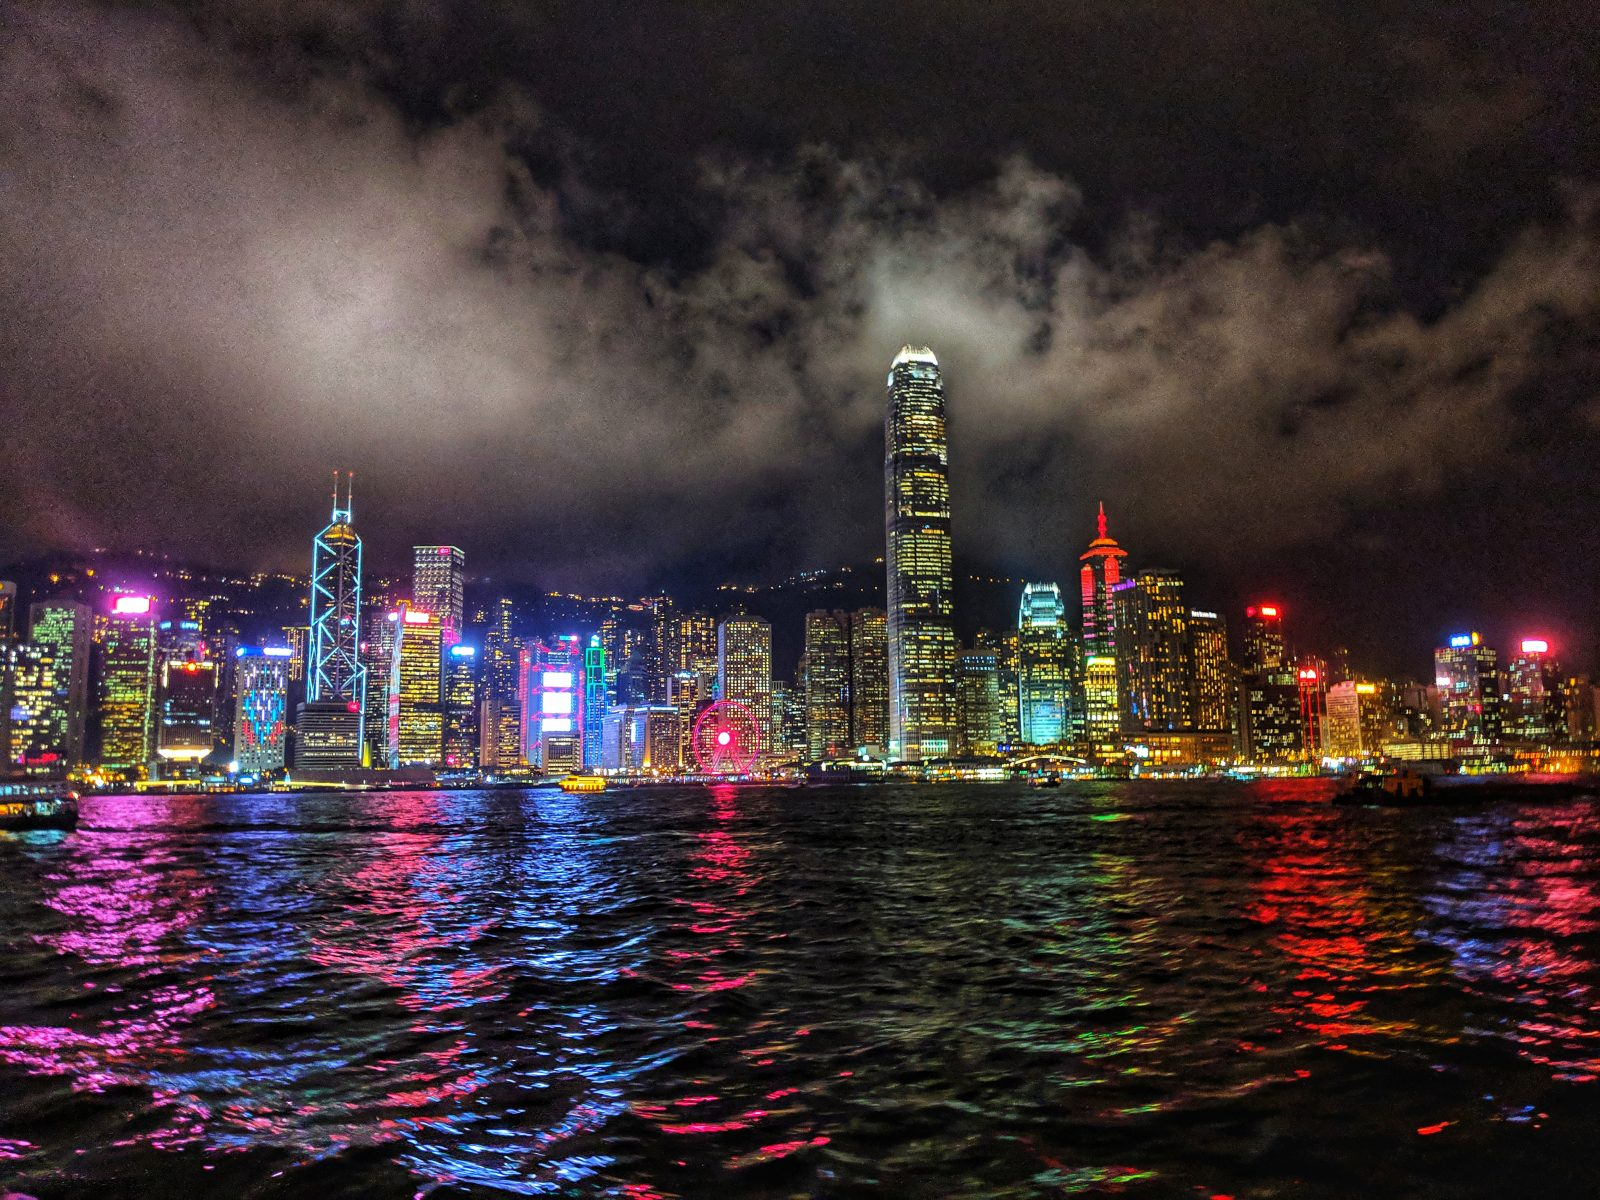 Itinerary: 5 nights in Hong Kong (business trip)